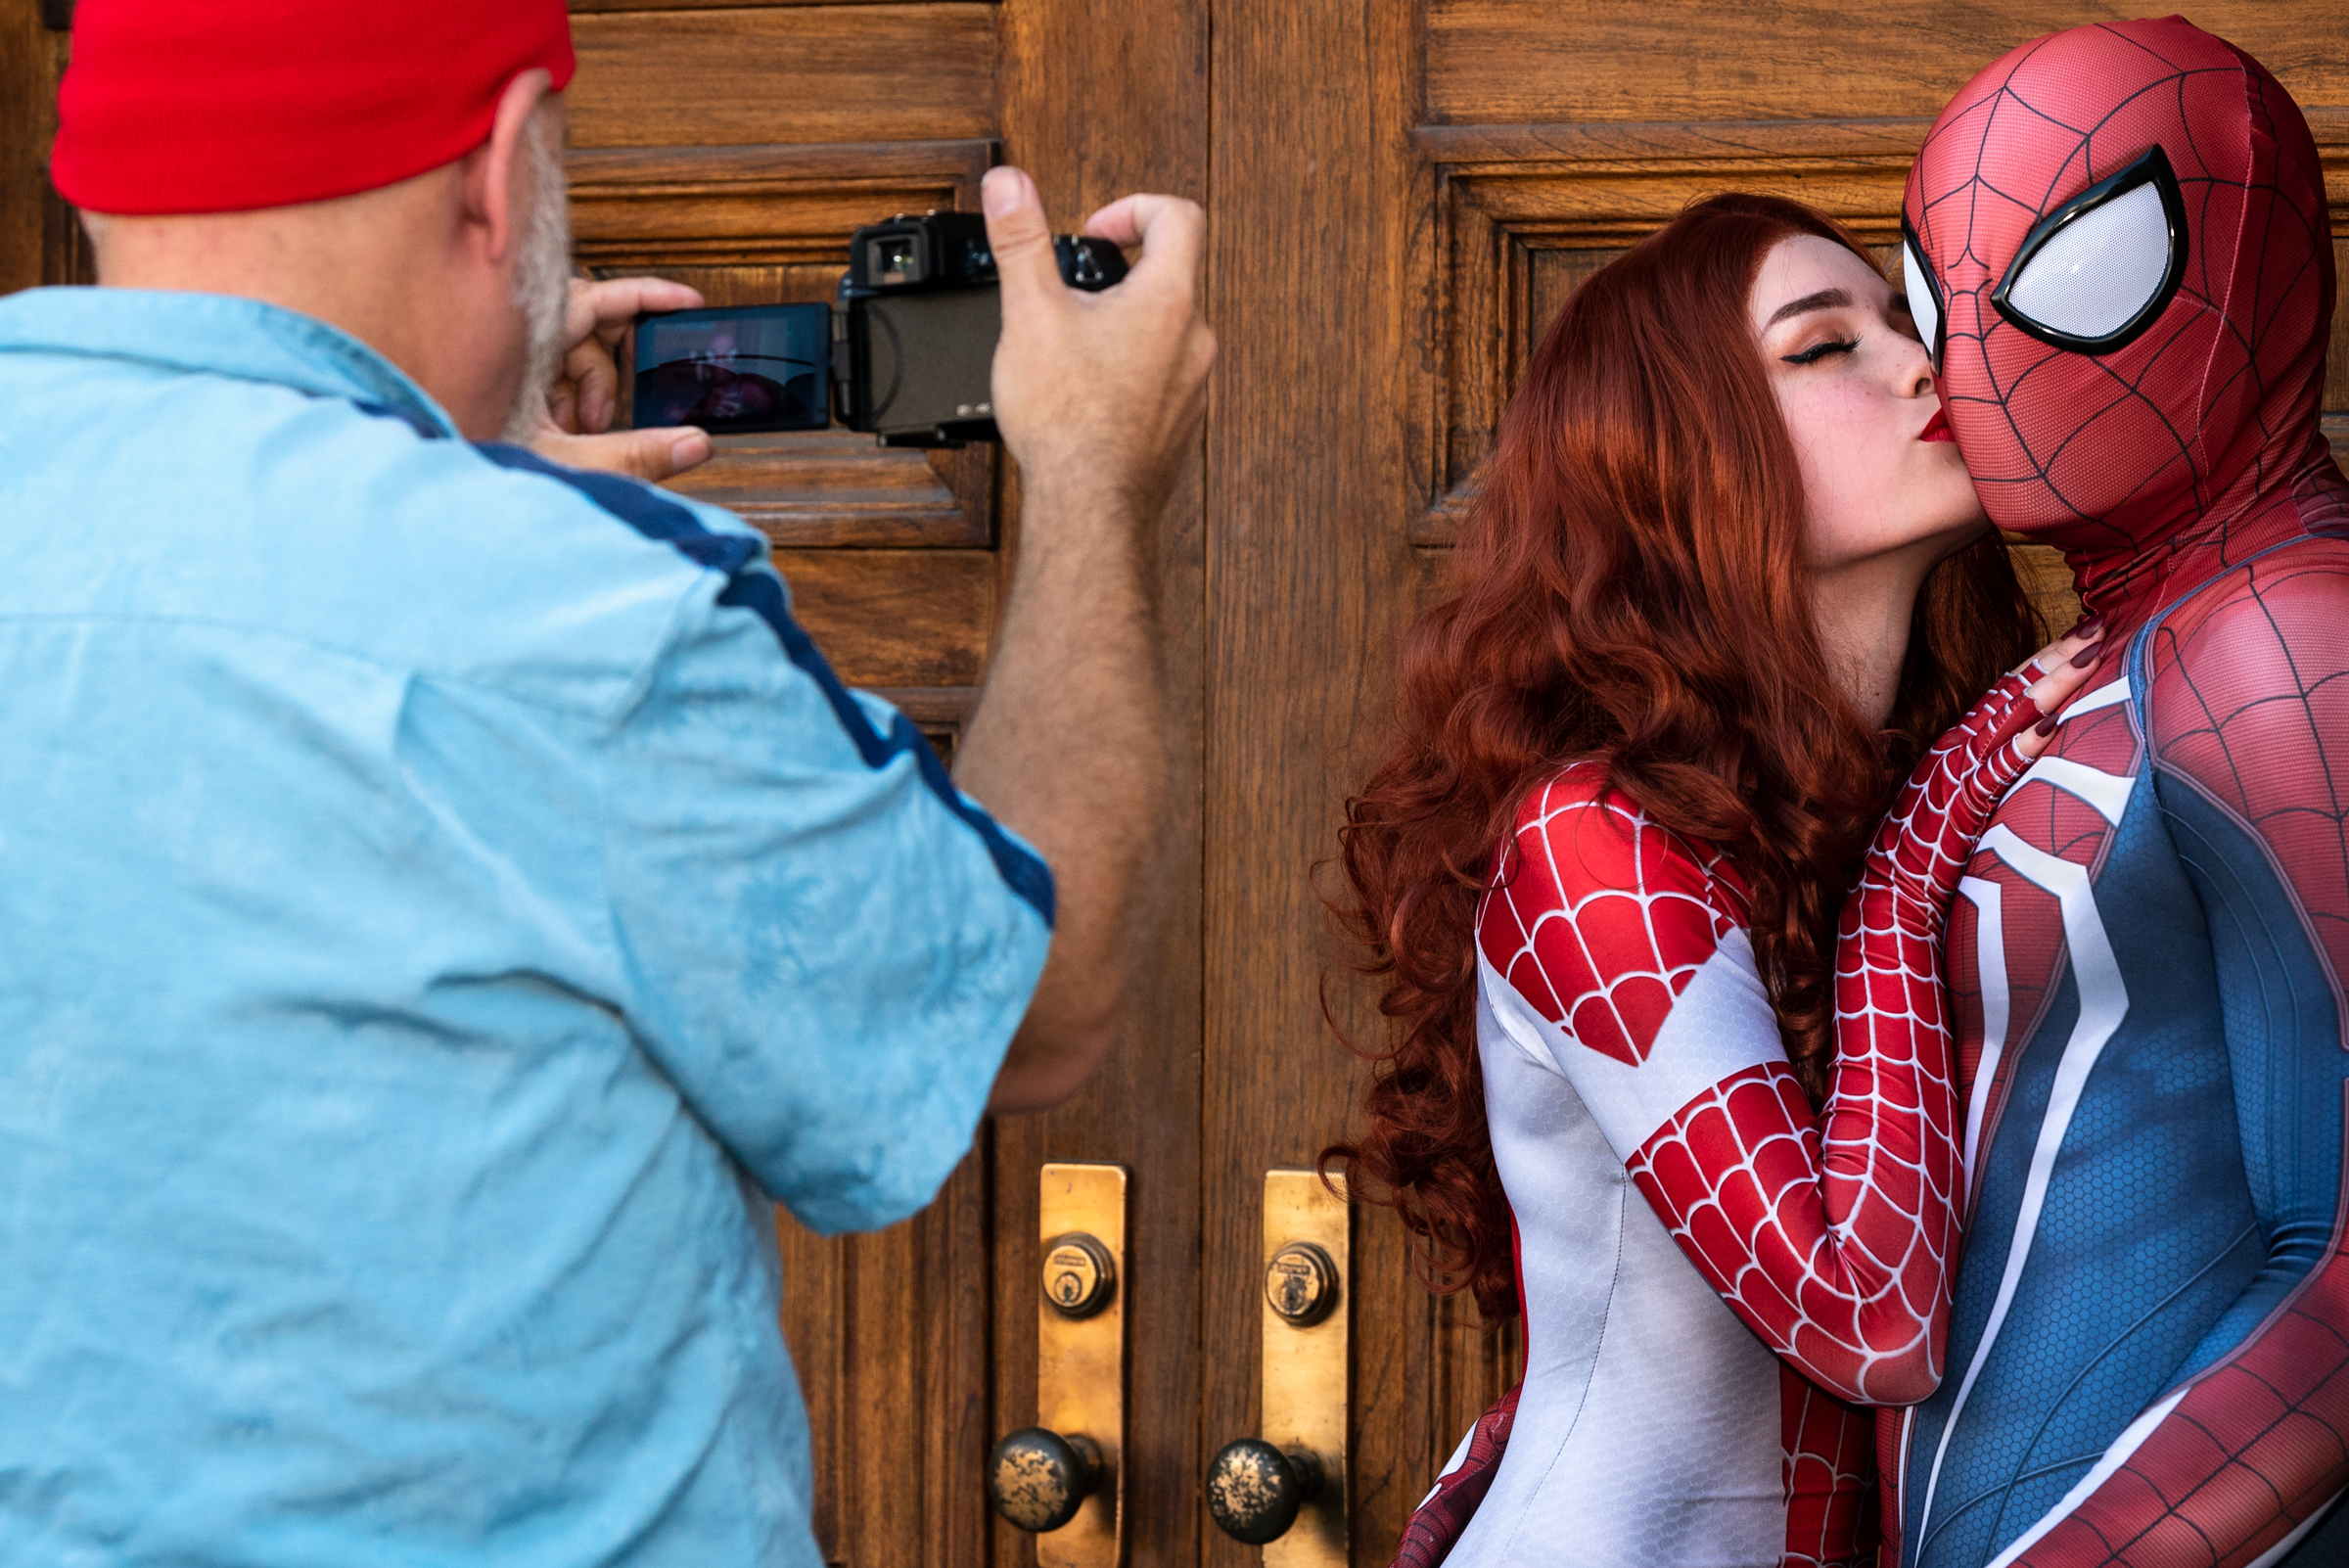 A man takes a picture of cosplayers during Nerdbot Con, a cospla